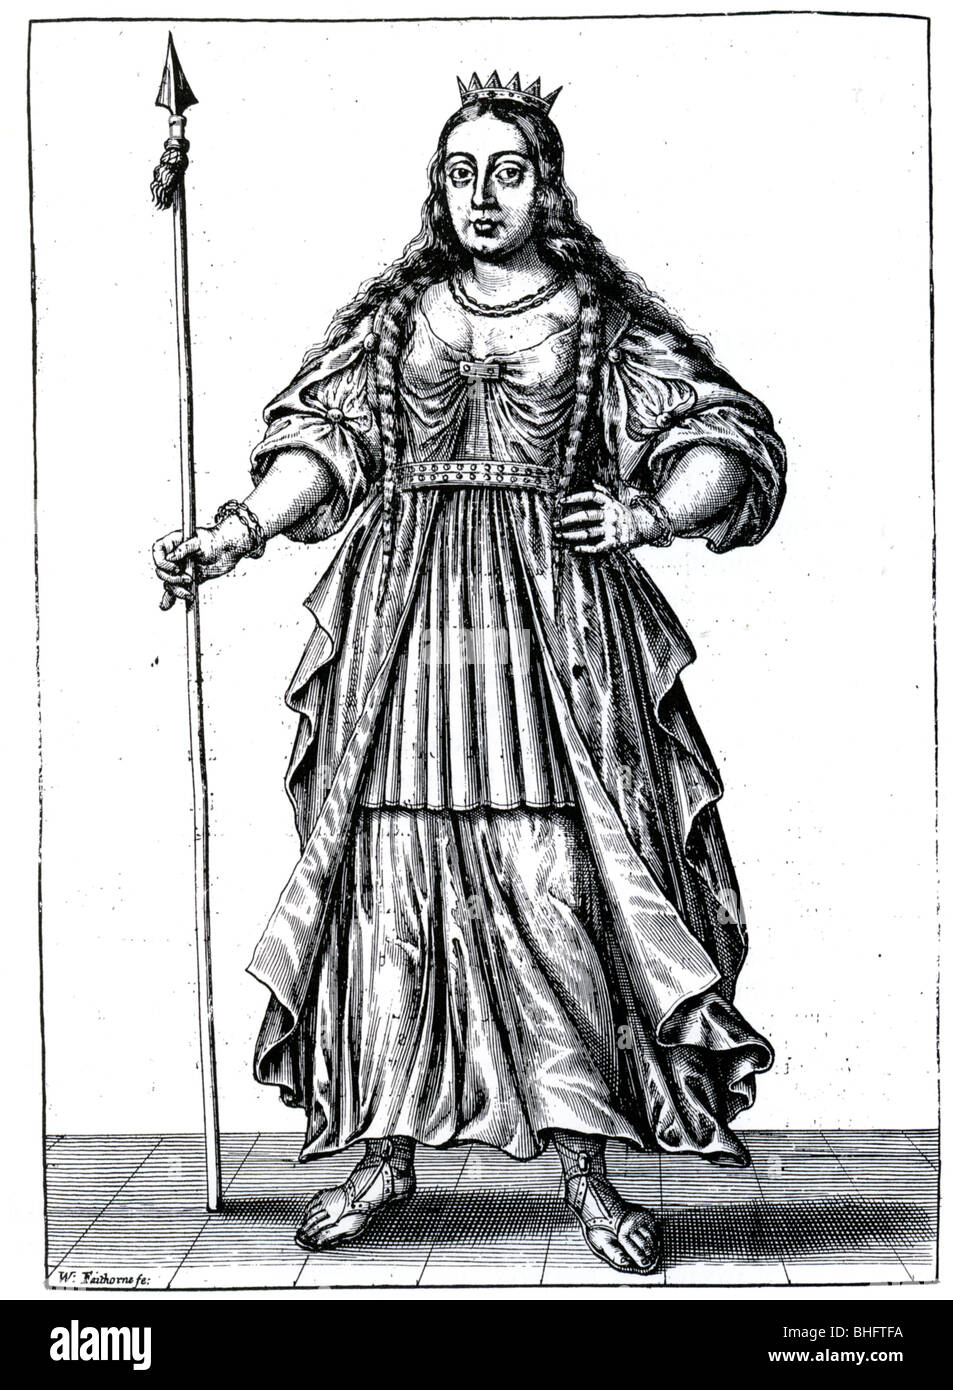 BOUDICCA (aka Boadicea) - British warrior queen who died in 61 AD as imagined in a 17th century engraving - Stock Image